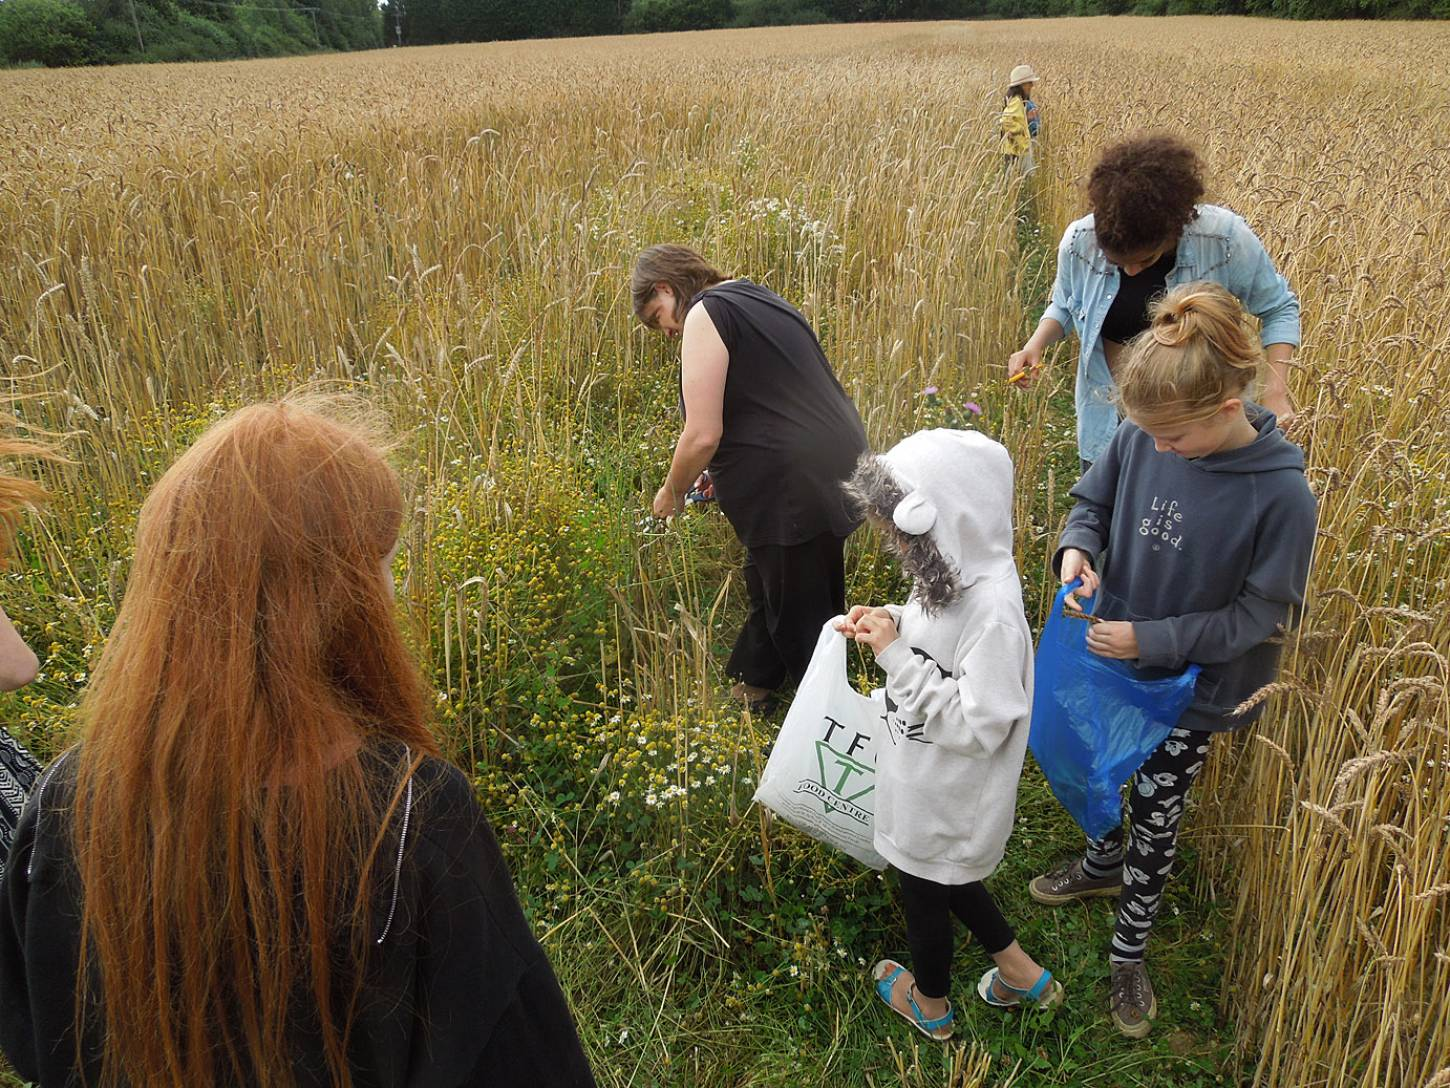 WoWo manual harvest - sorting - 4:07pm&nbsp;6<sup>th</sup>&nbsp;Aug.&nbsp;'15